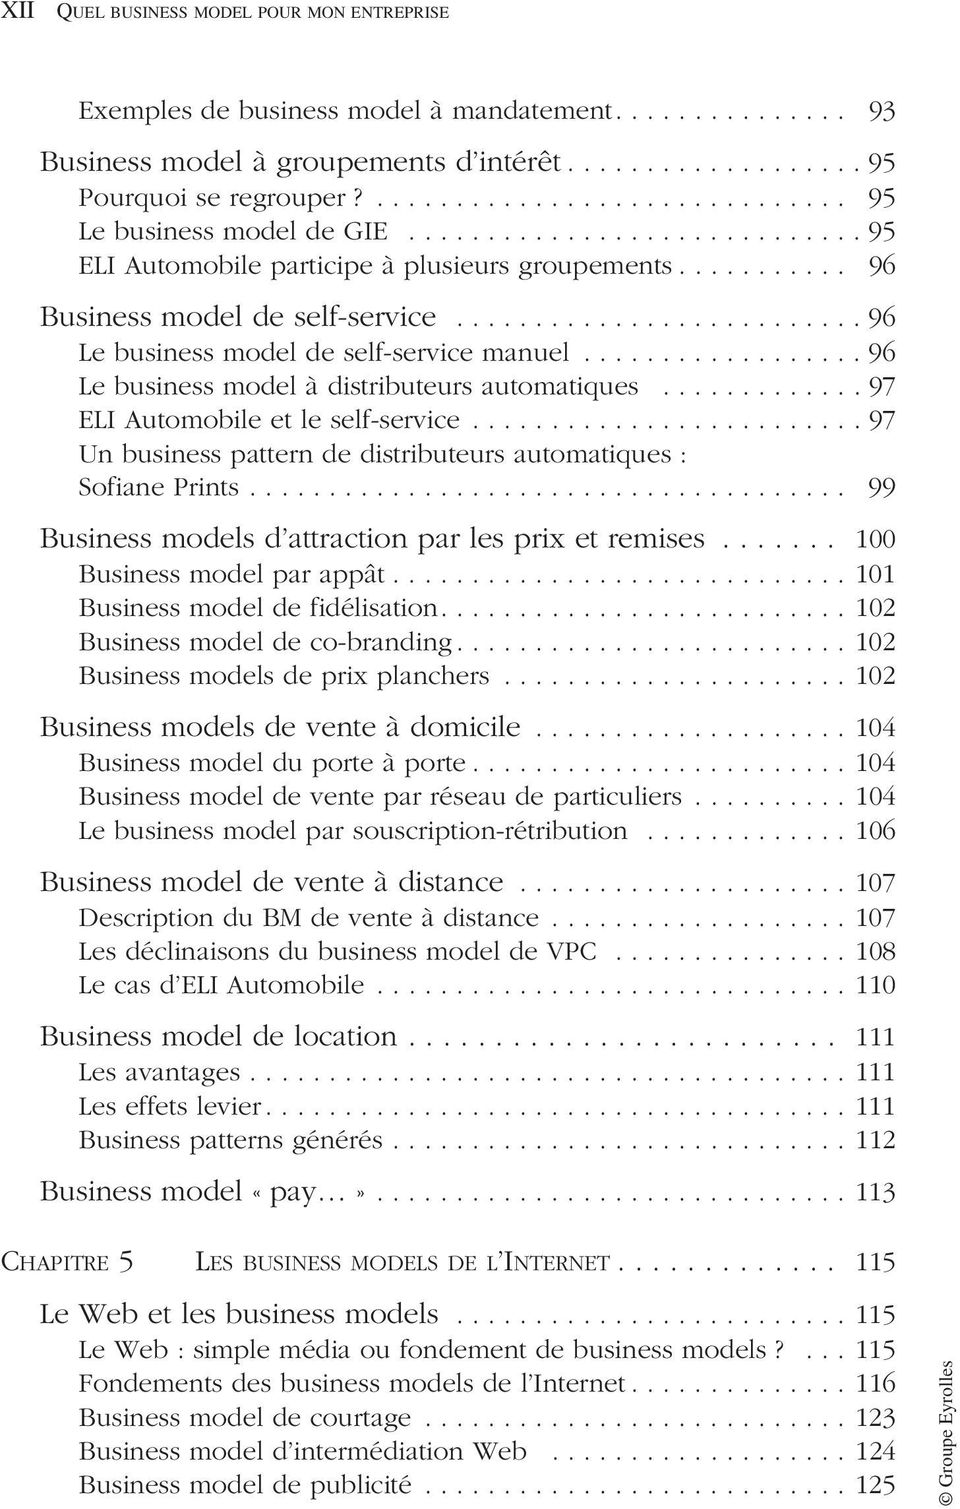 ......................... 96 Le business model de self-service manuel.................. 96 Le business model à distributeurs automatiques............. 97 ELI Automobile et le self-service.